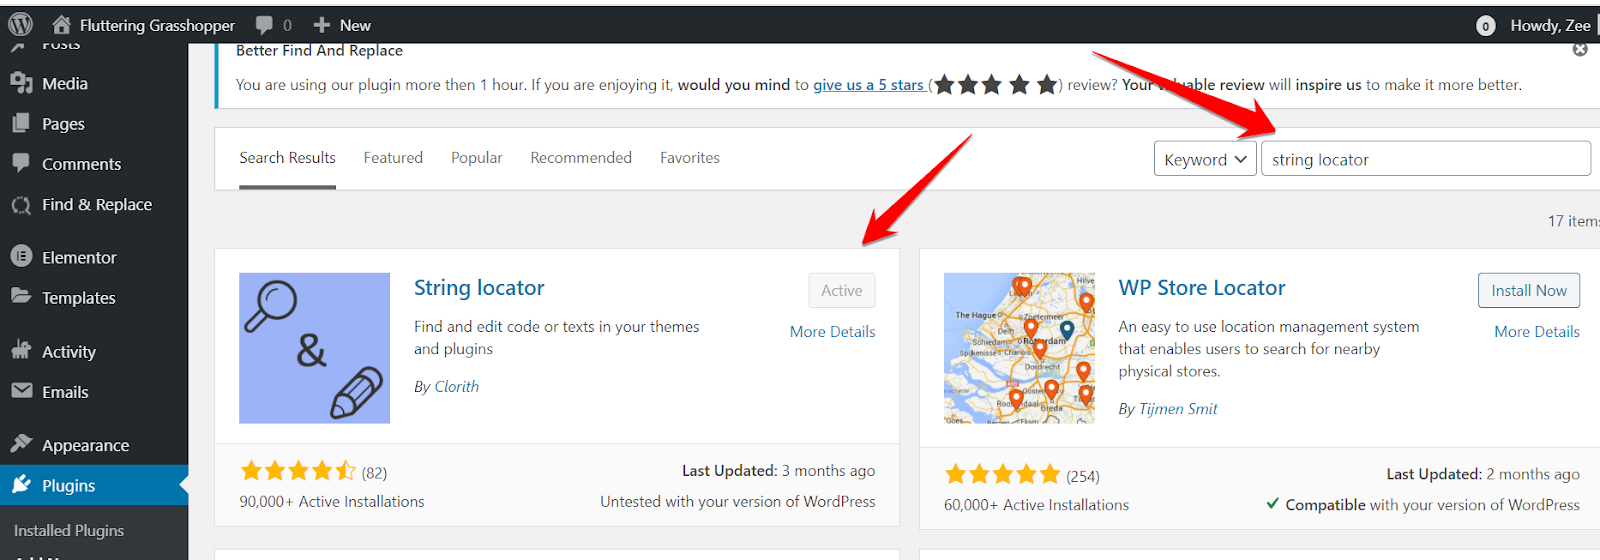 String Locator plugin in WordPress